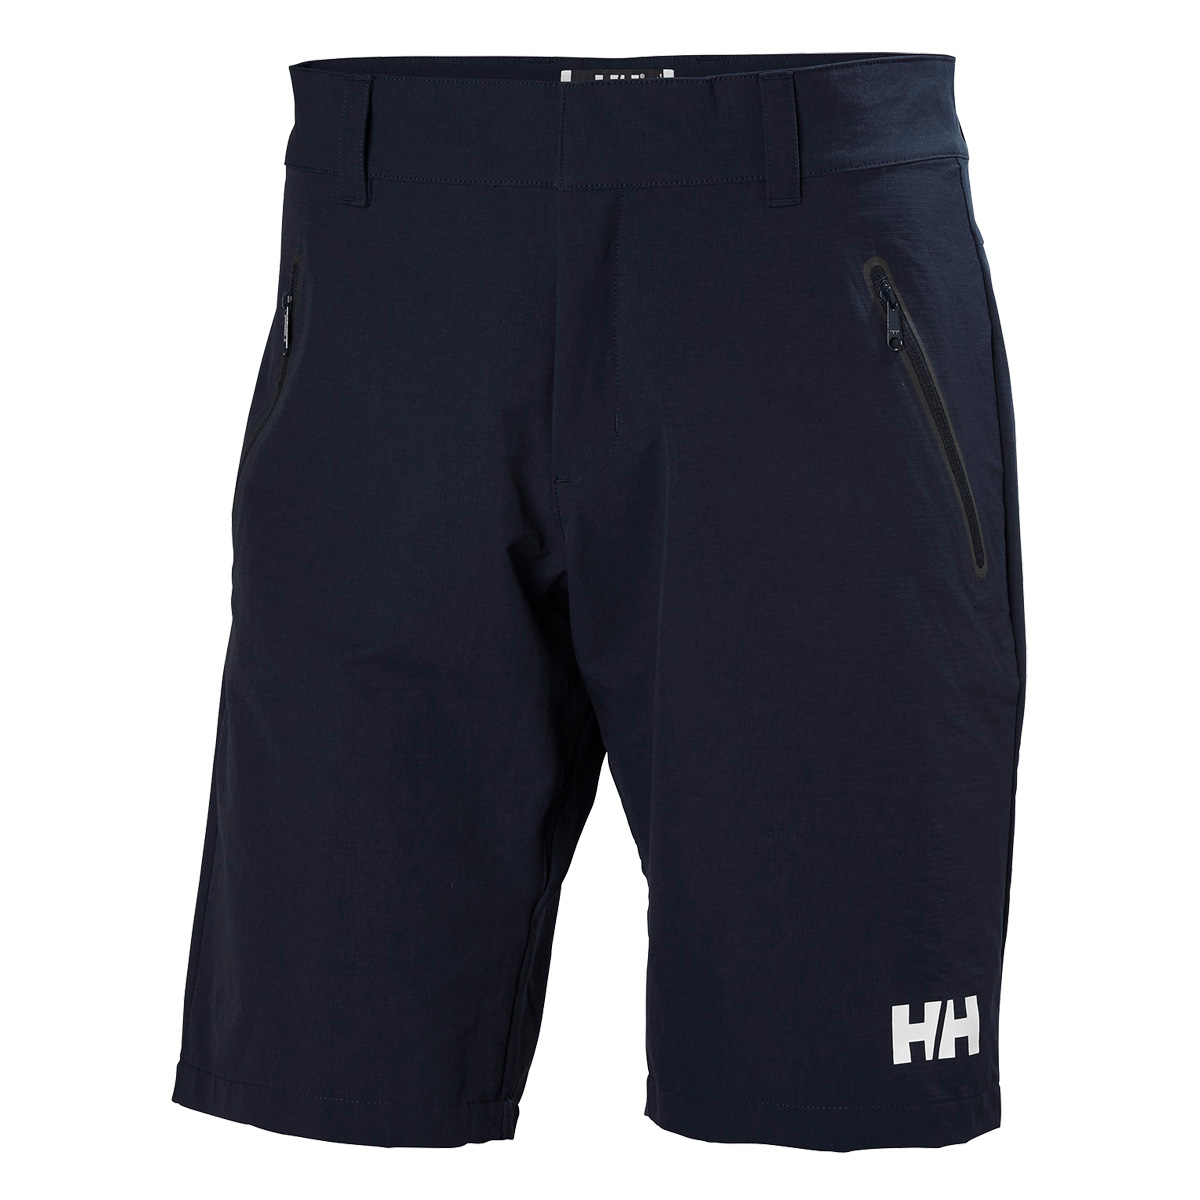 HELLY HANSEN CREWLINE QD SHORTS (53018)